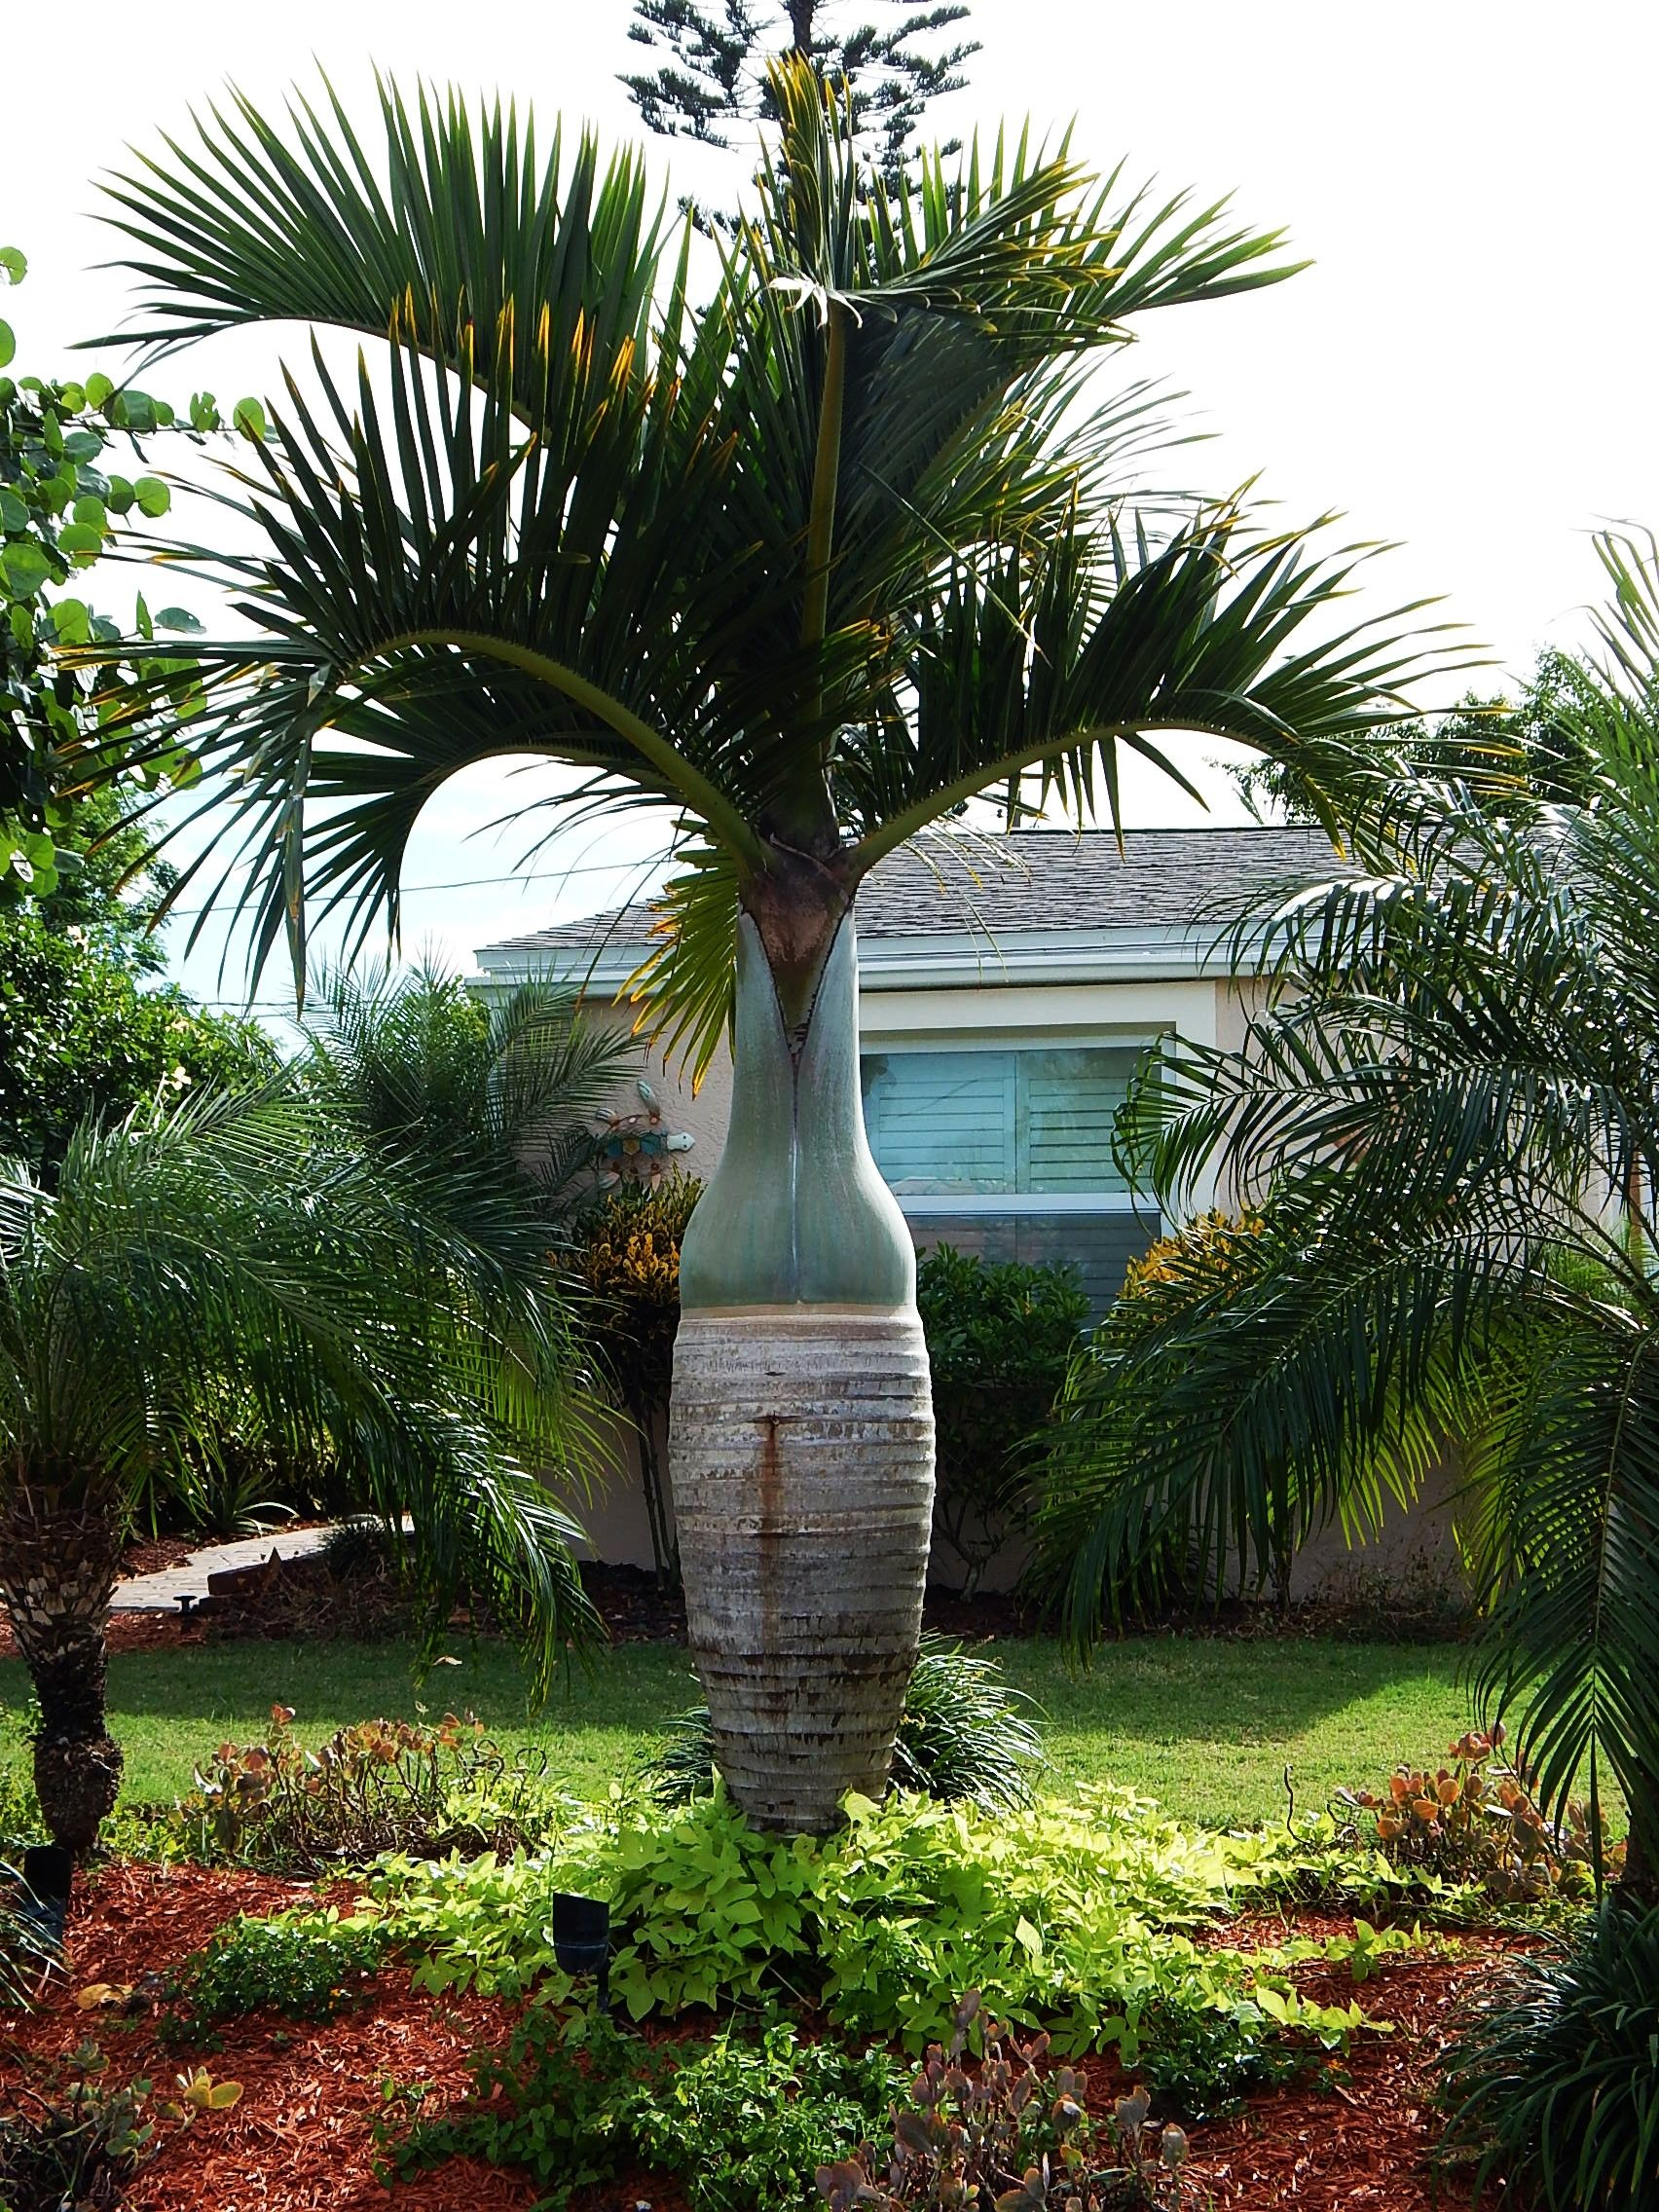 The Spindle Palm Hyophorbe Verschafeltii In A Residential Yard Tropical Garden Design Tropical Plants Palm Trees